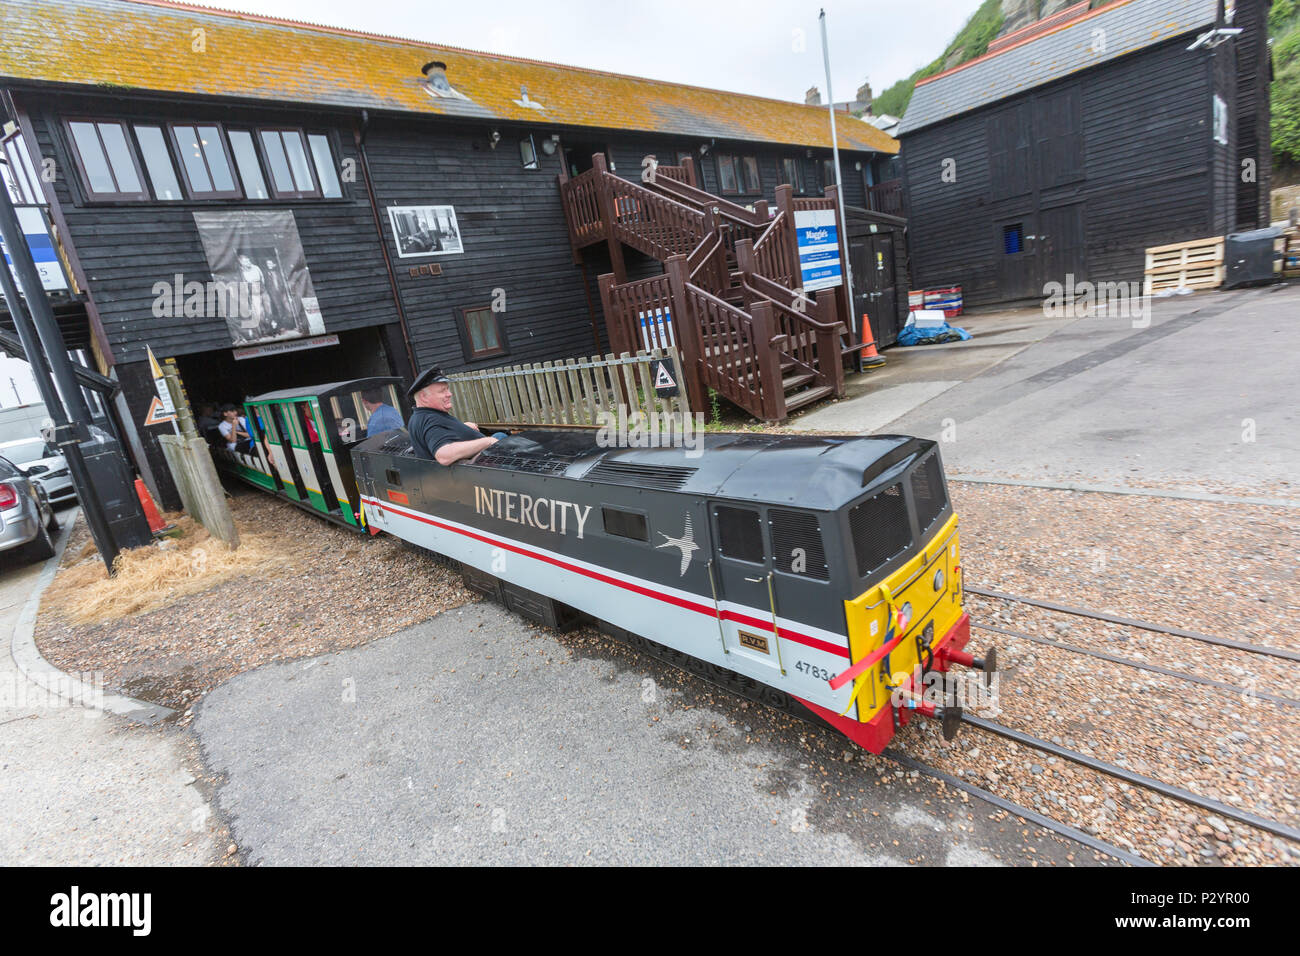 InterCity locomotive and driver, Hastings Miniature InterCity Railway. Hastings, East Sussex, England , UK - Stock Image